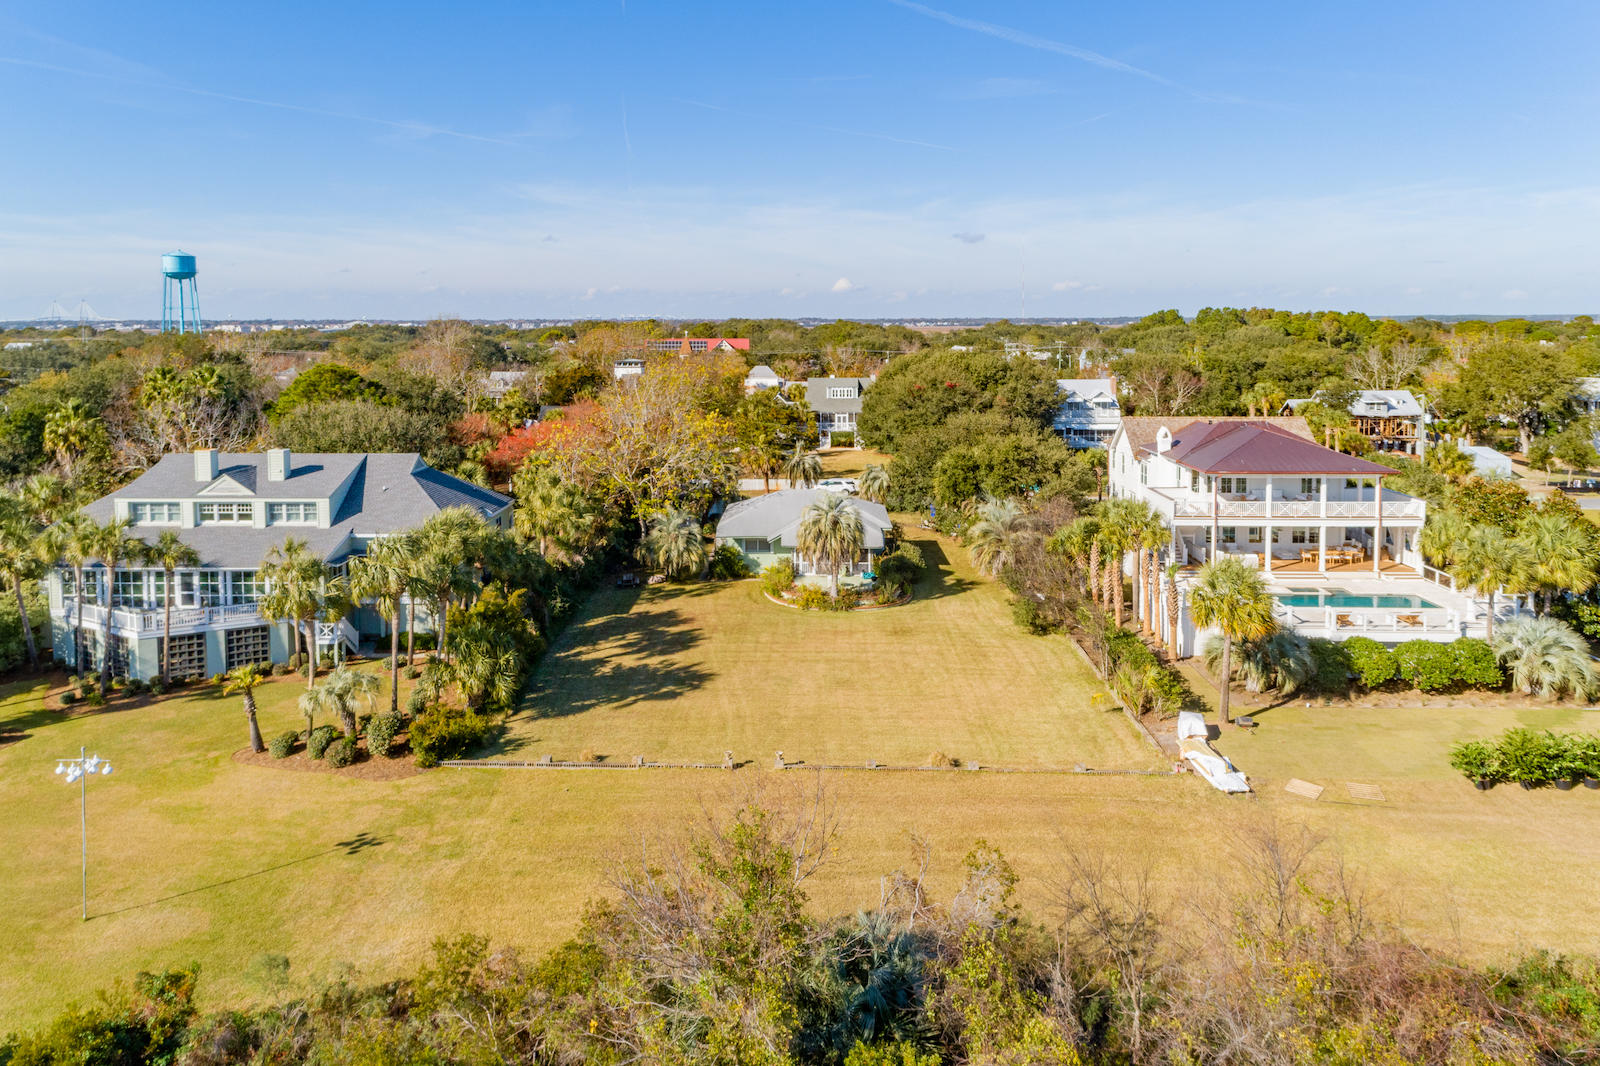 Sullivans Island Homes For Sale - 2525 Atlantic, Sullivans Island, SC - 10